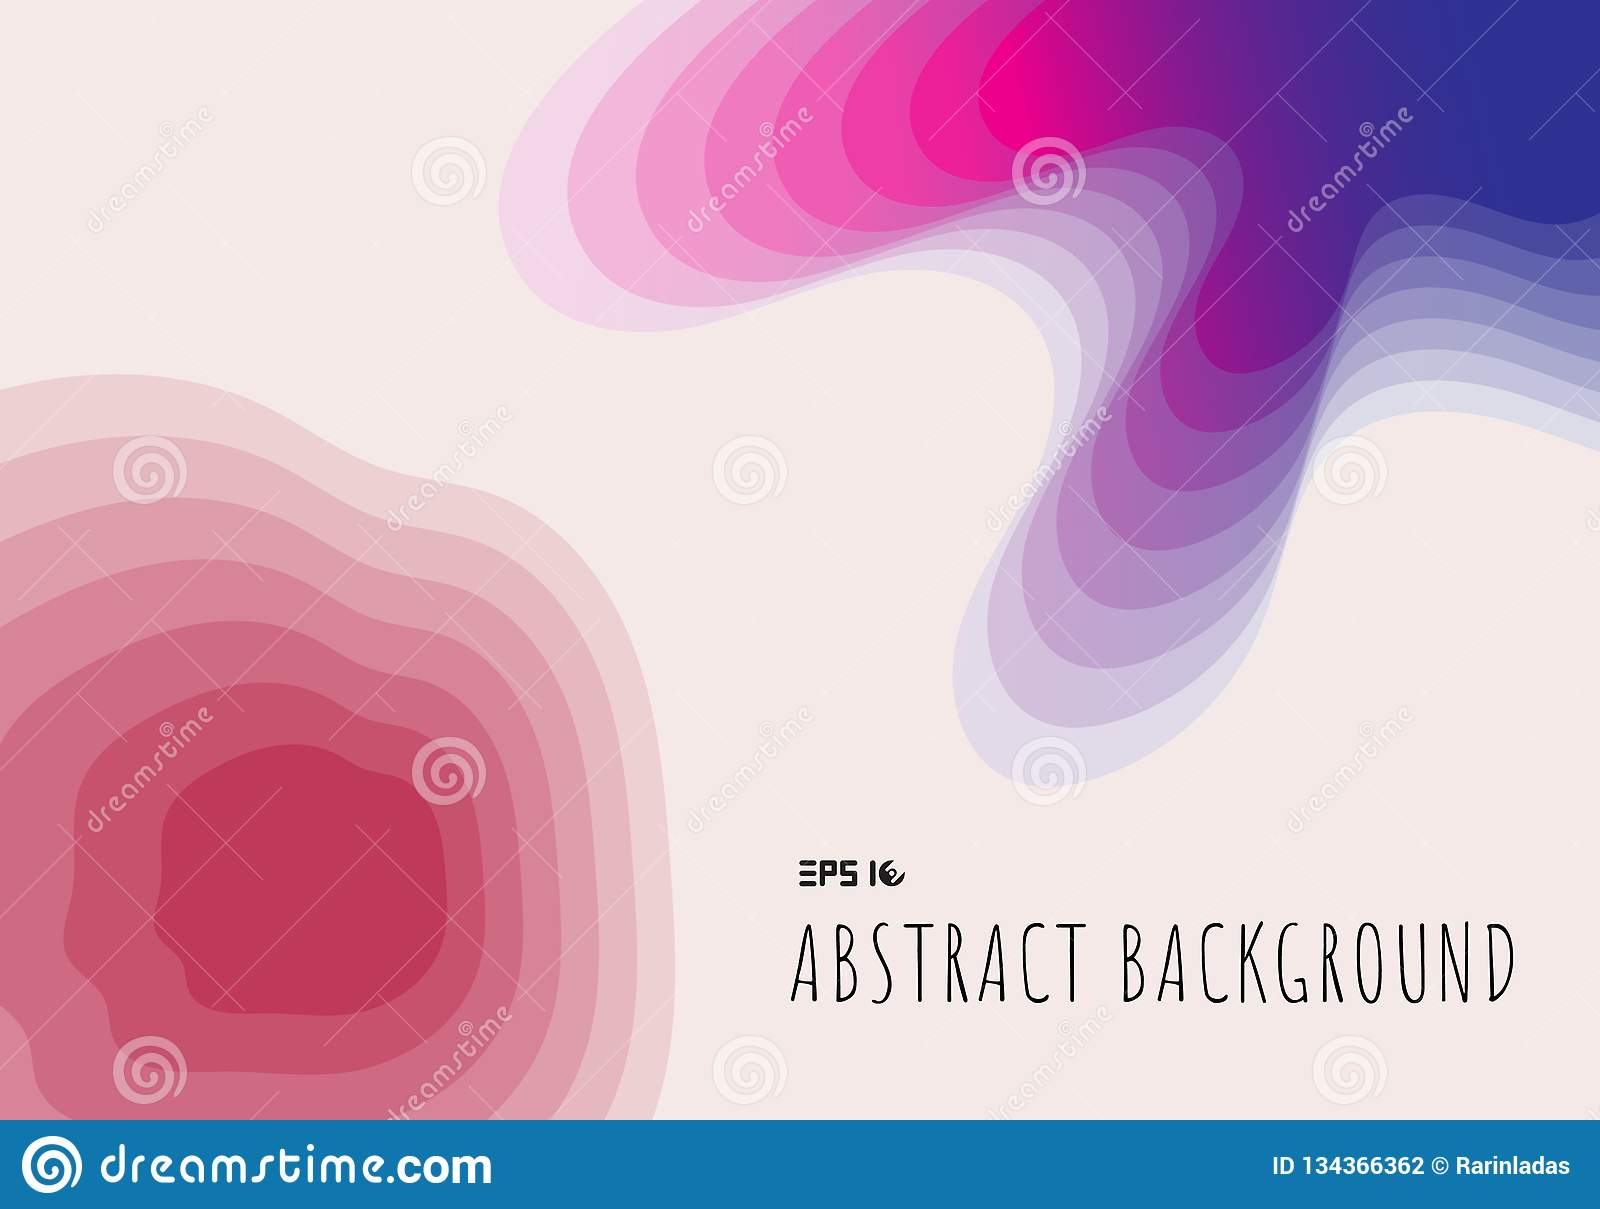 Abstract topography 3D paper cut geometric with gradient on blue and pink background and texture